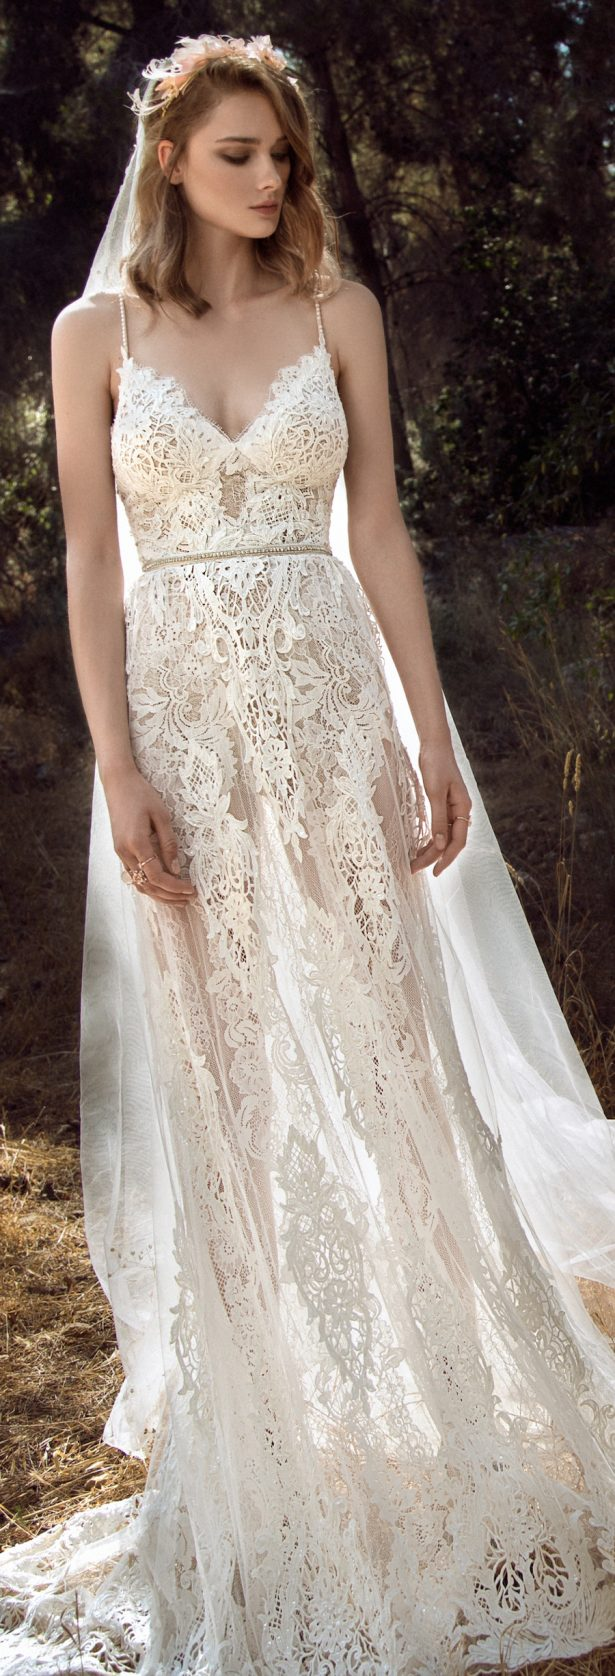 GALA Collection NO. IV By Galia Lahav Wedding Dresses